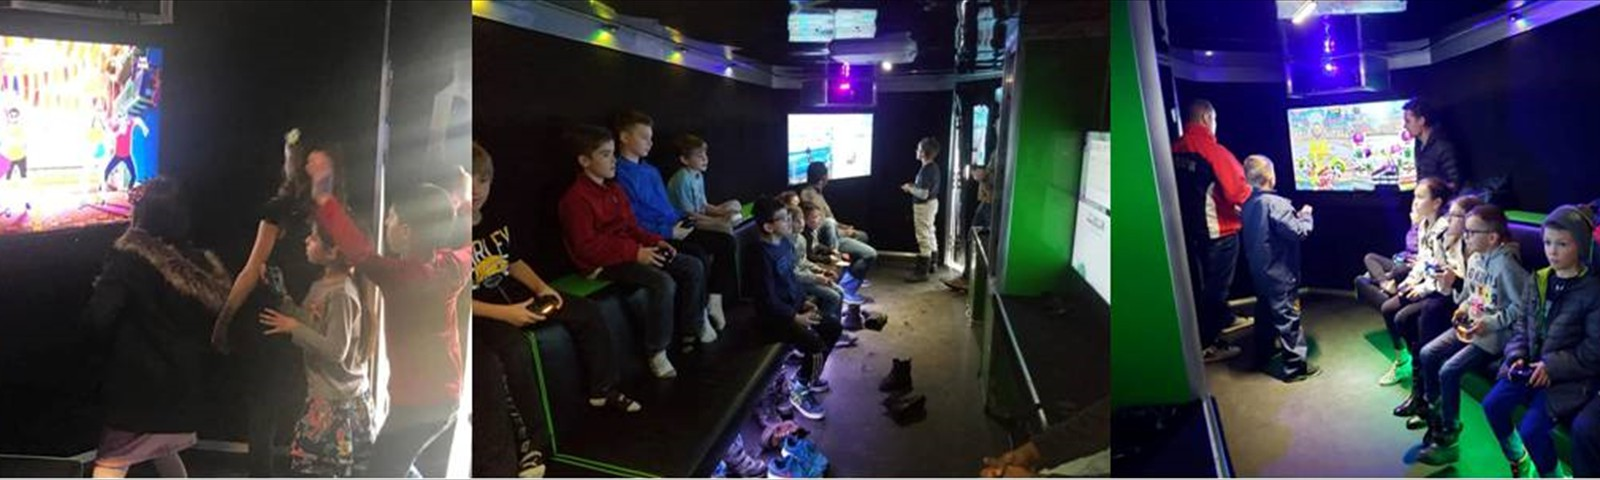 virtual-reality-video-game-truck-party-in-calgary-alberta-canada-16